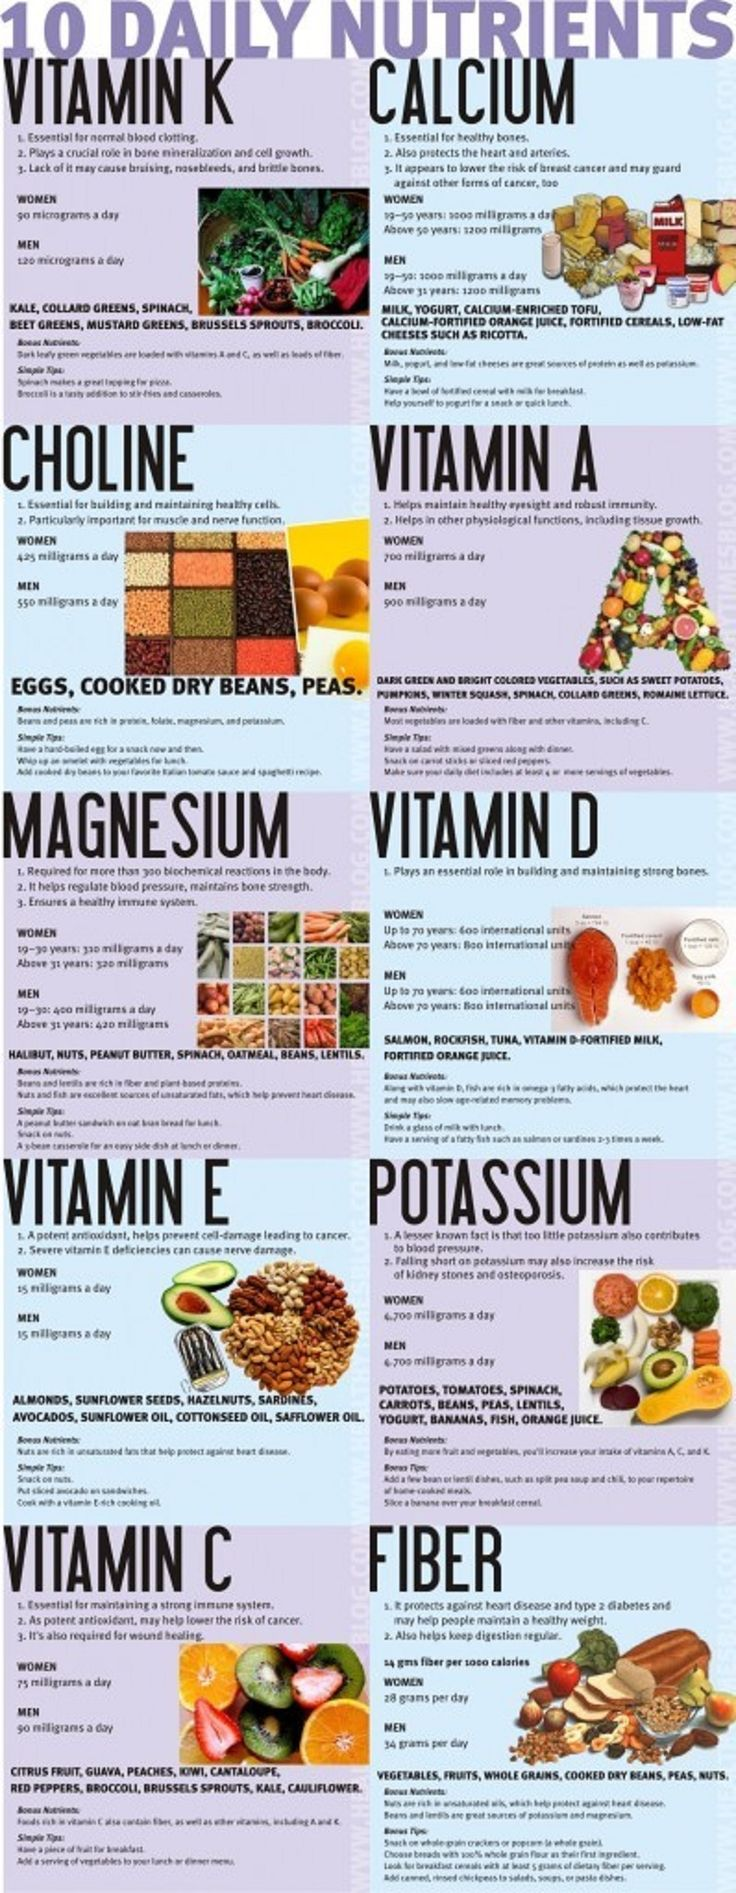 Daily Nutrient Sources. If you have not been getting these daily, you can catch up by super-charging your intake with veggie and fruit juice or smoothies.